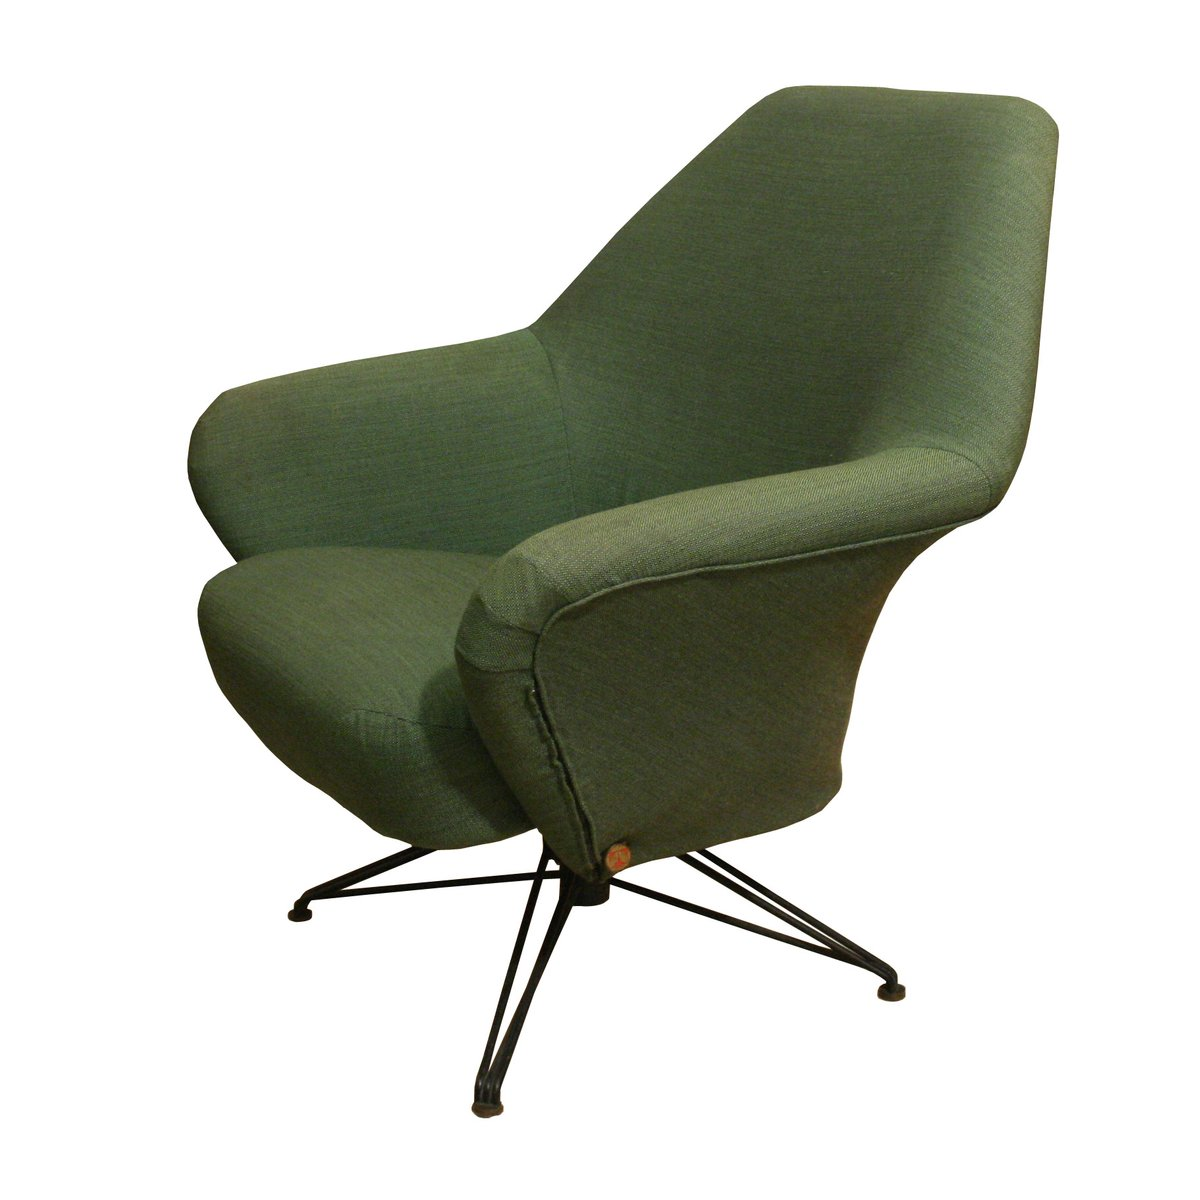 P32 Armchair By Osvaldo Borsani For Tecno 1962 For Sale